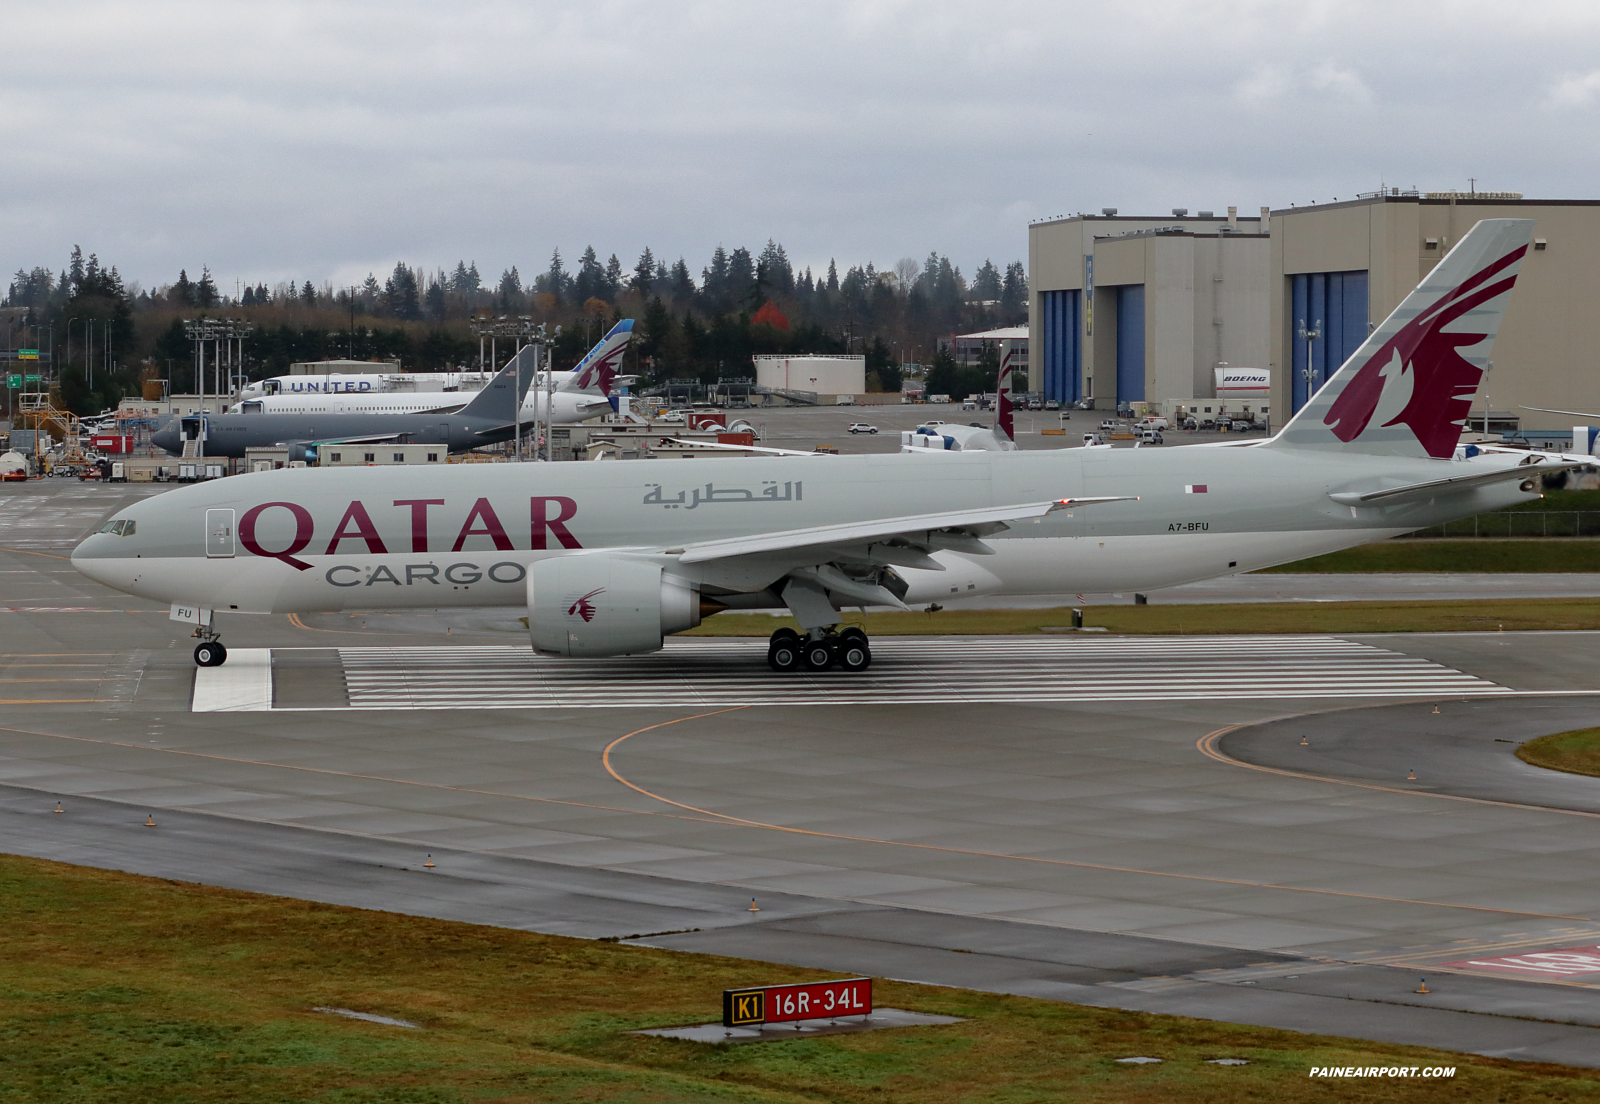 Qatar Cargo 777F A7-BFU at Paine Field